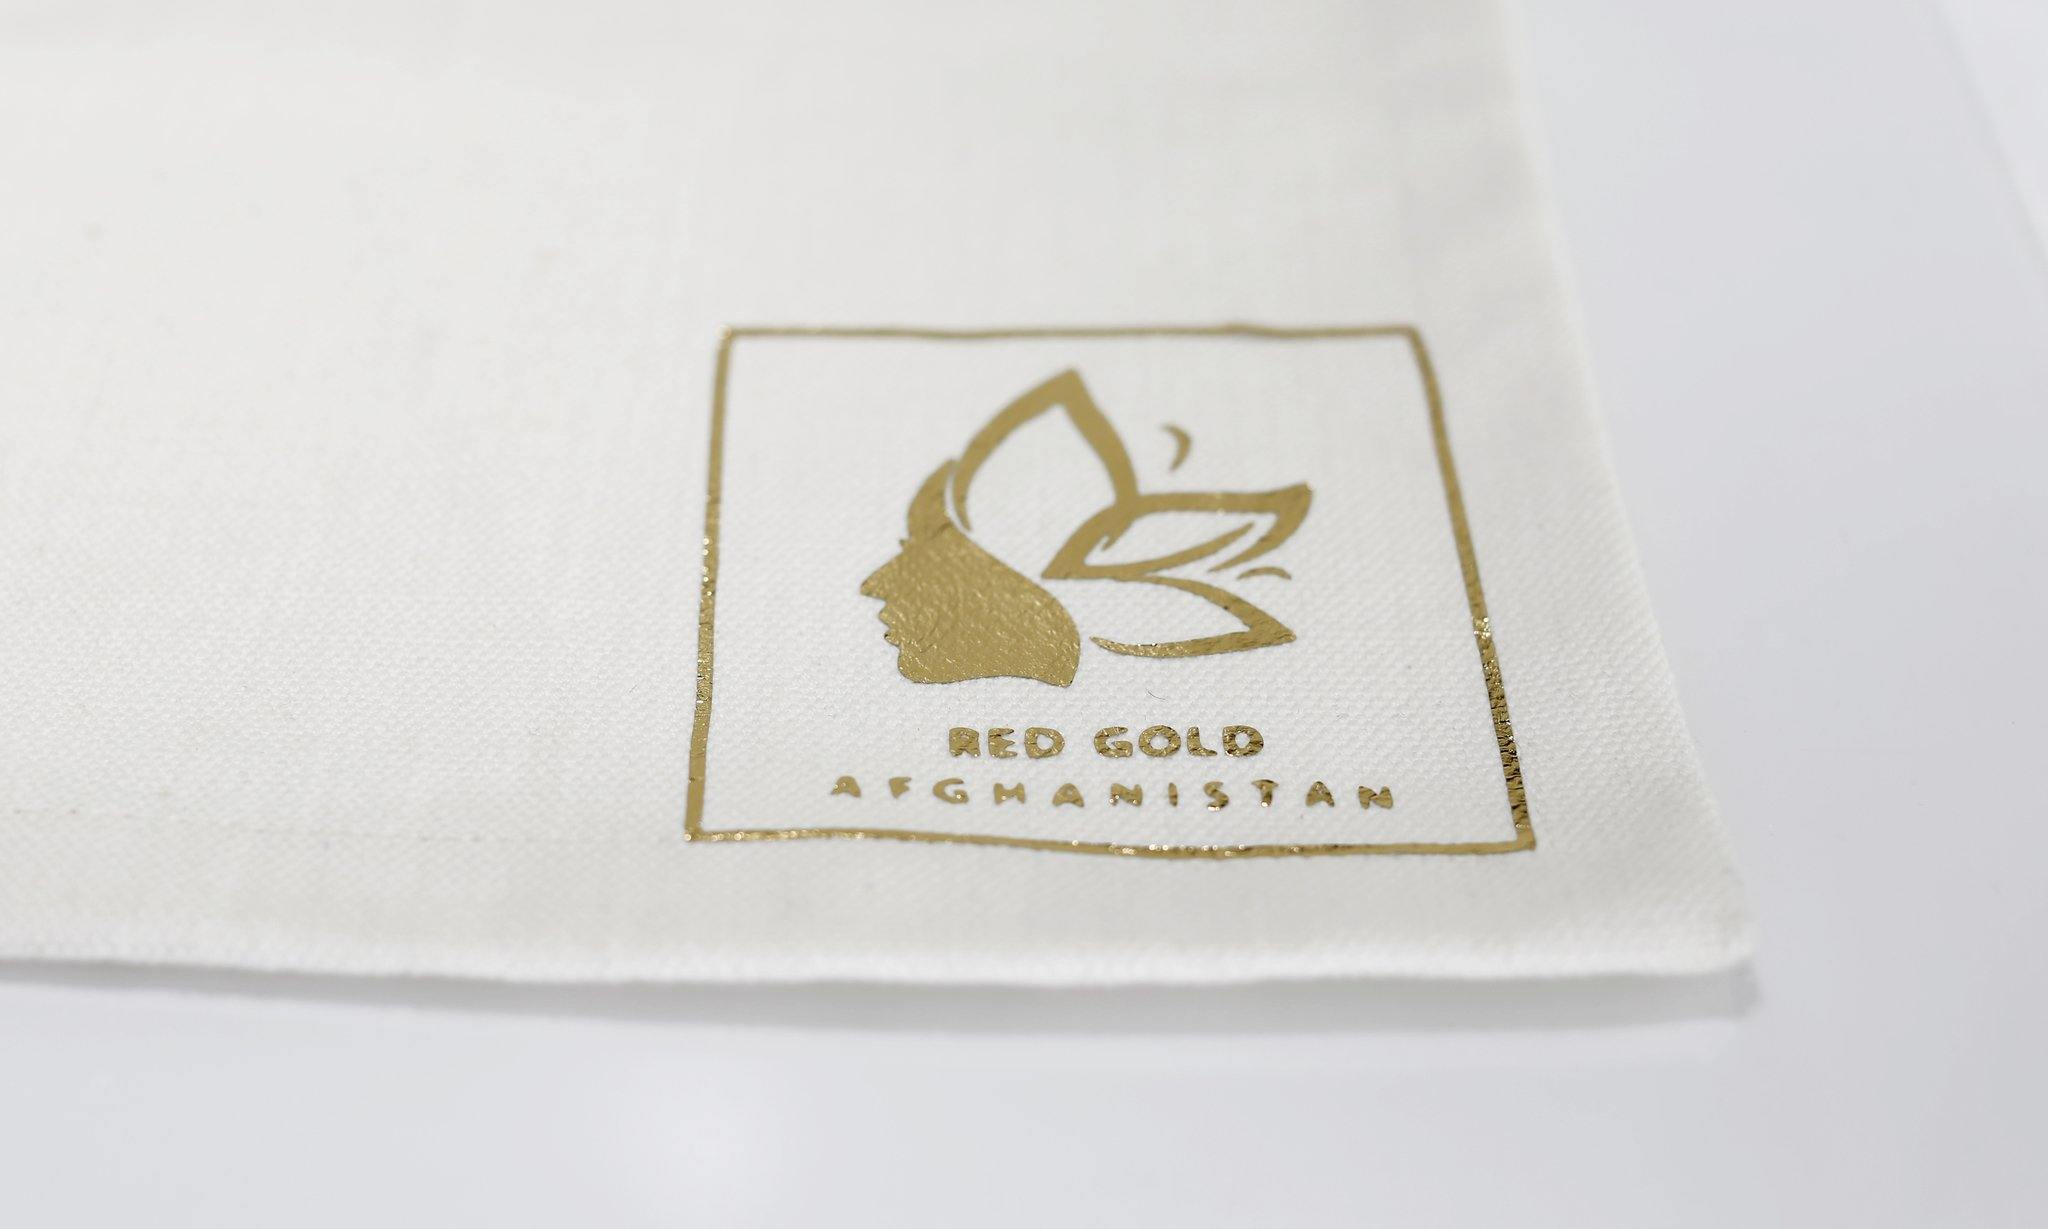 Table Cloth - Red Gold of Afghanistan - Premium Afghan Saffron